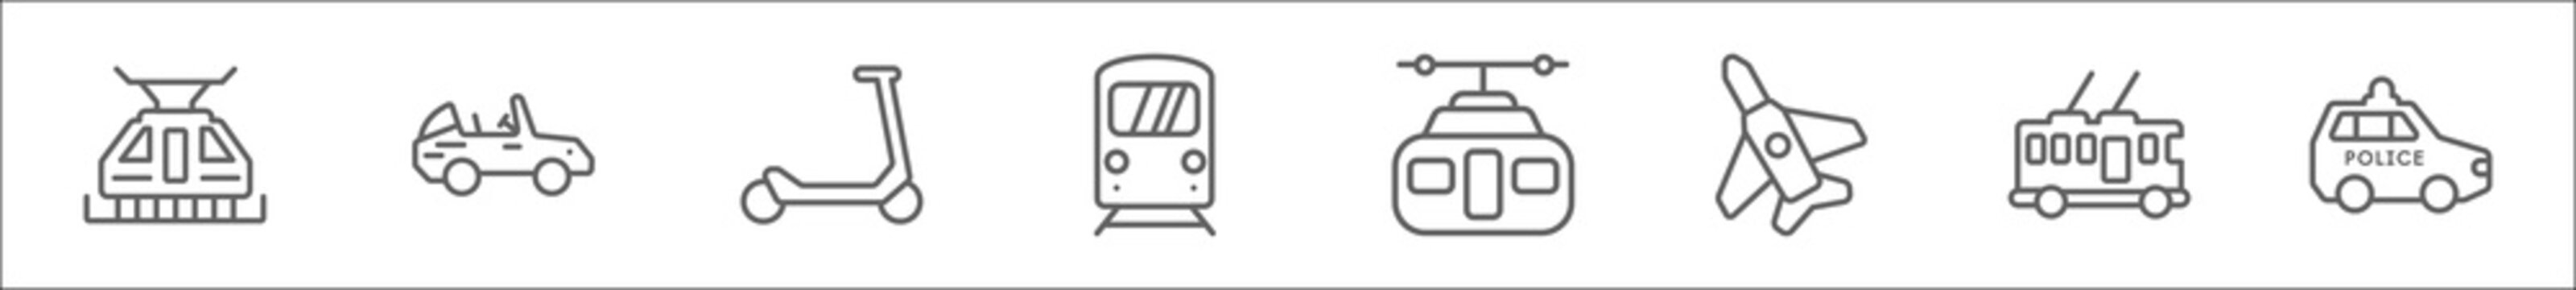 outline set of transport aytan line icons. linear vector icons such as funicular railway, cabriolet, micro scooter, underground, chairlift, military airplane, trolleybus, police car